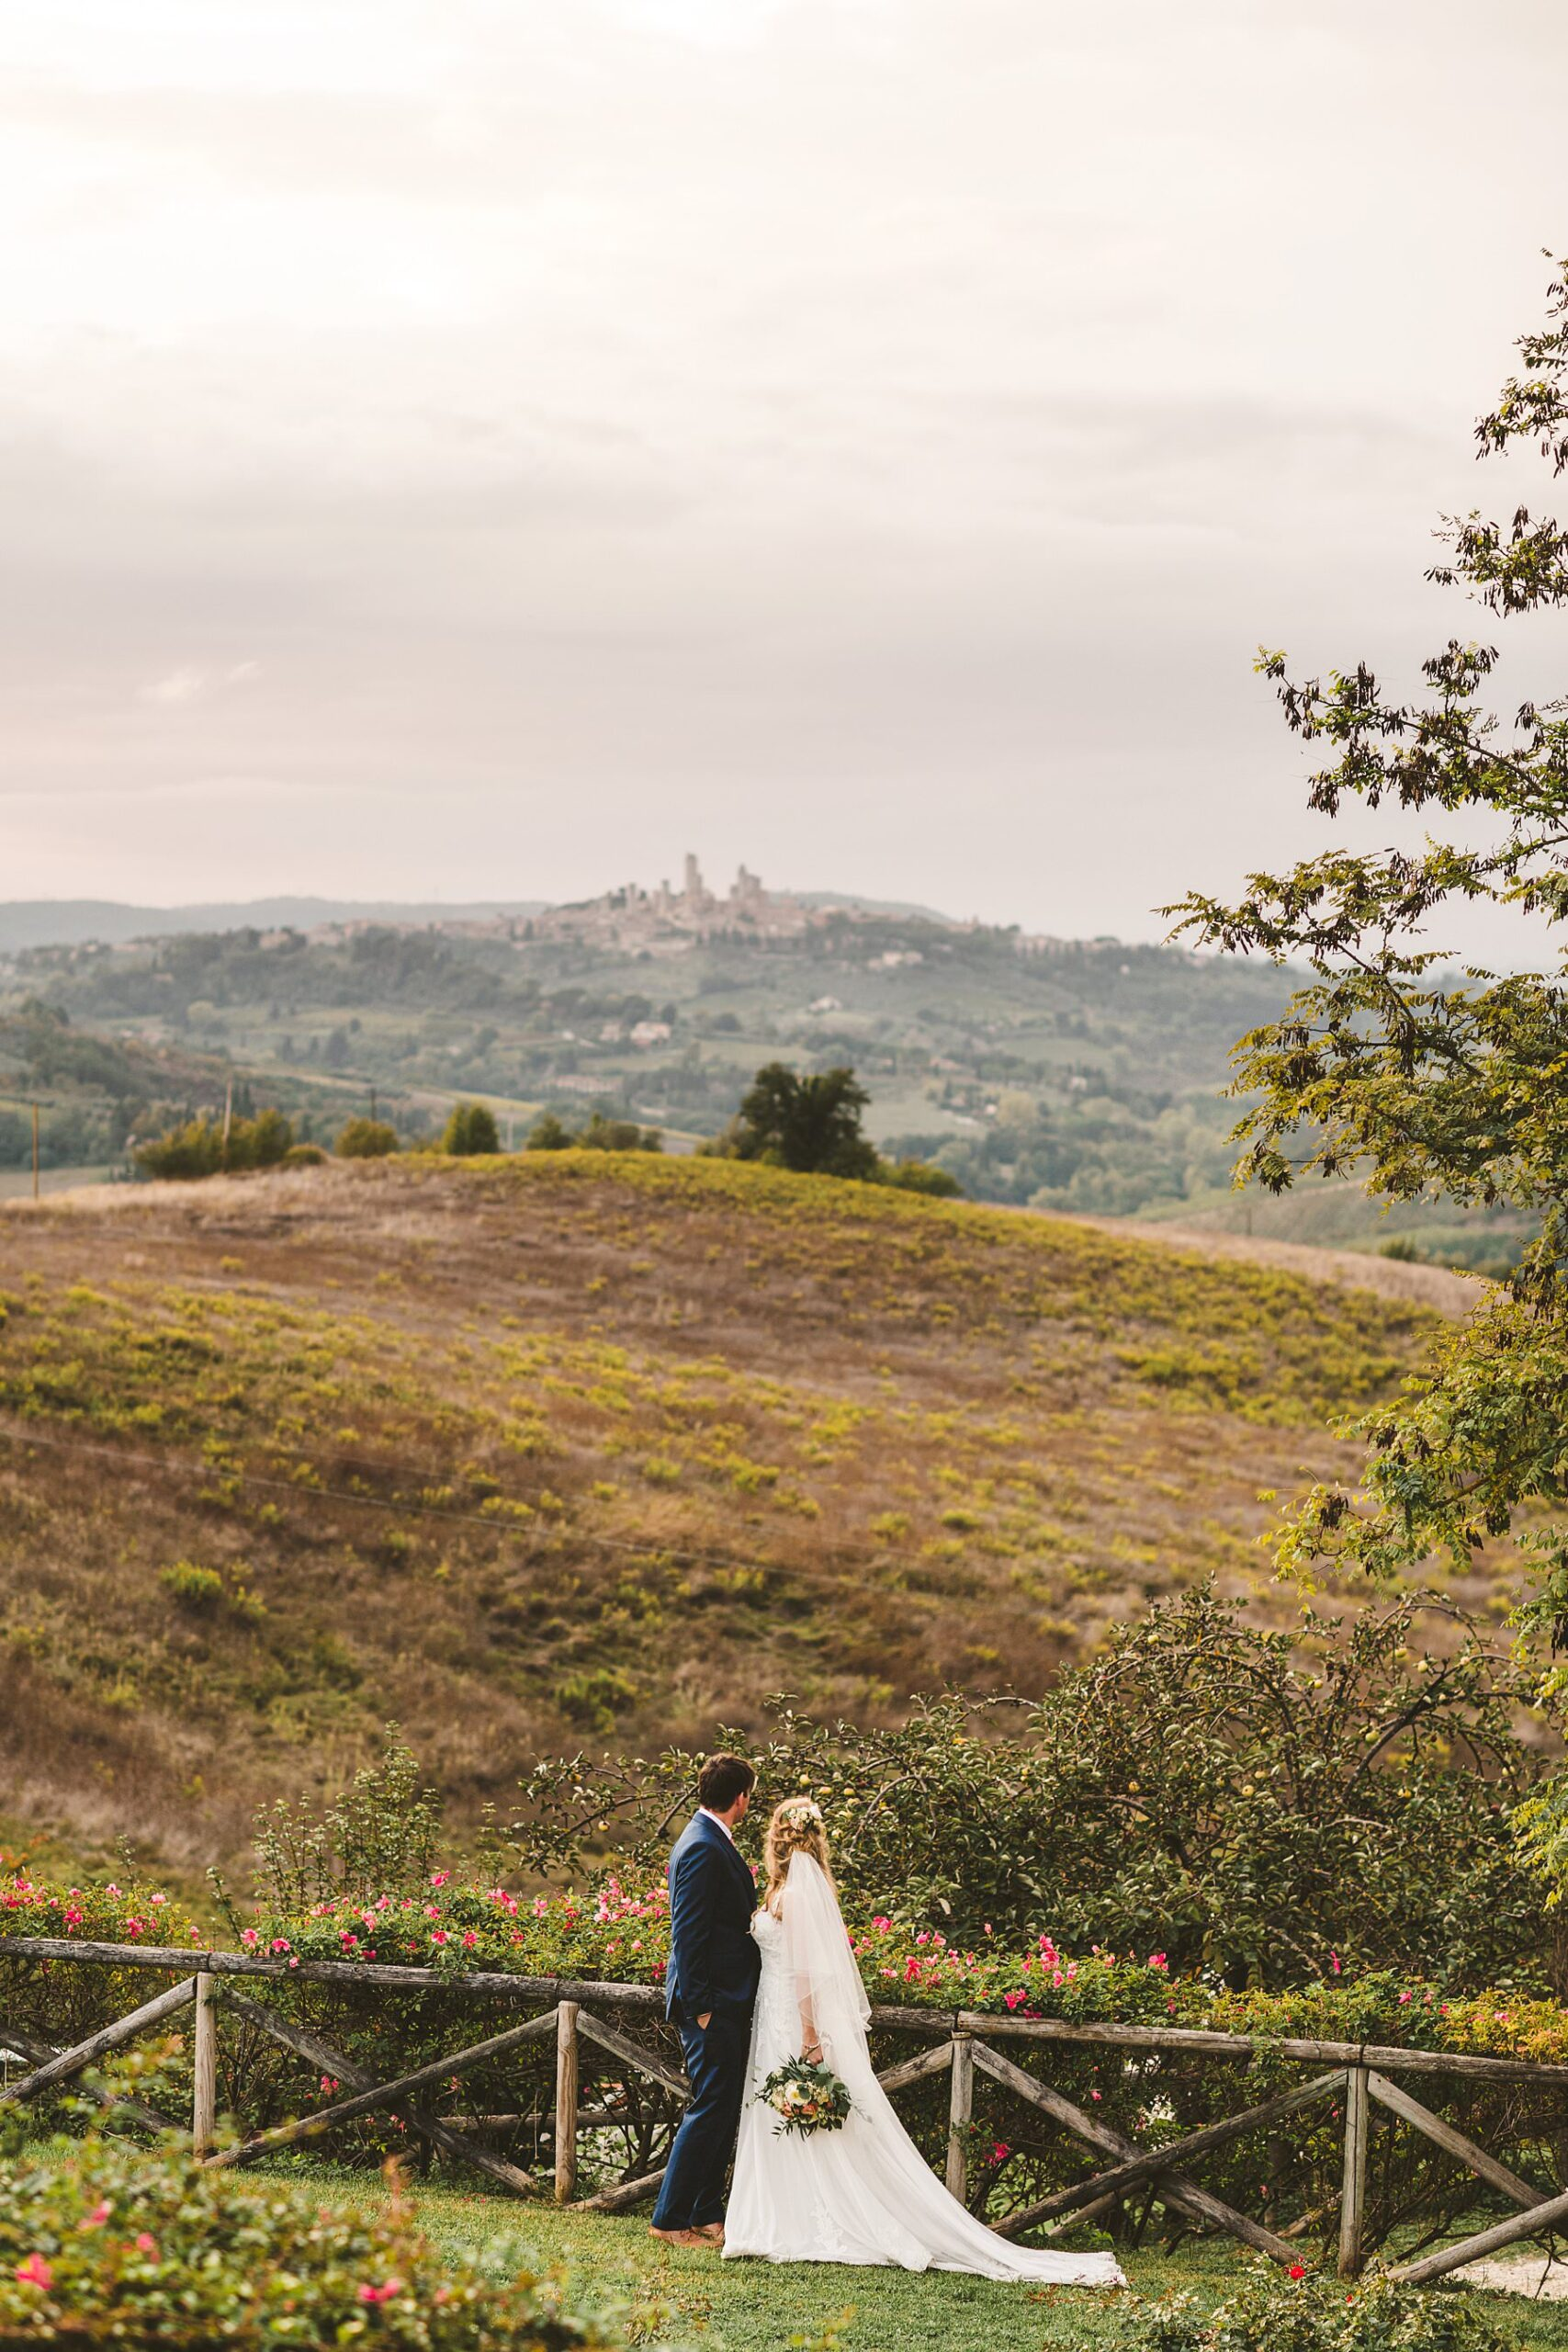 Bride and groom look at the splendid Tuscan countryside view with evocative rolling hills